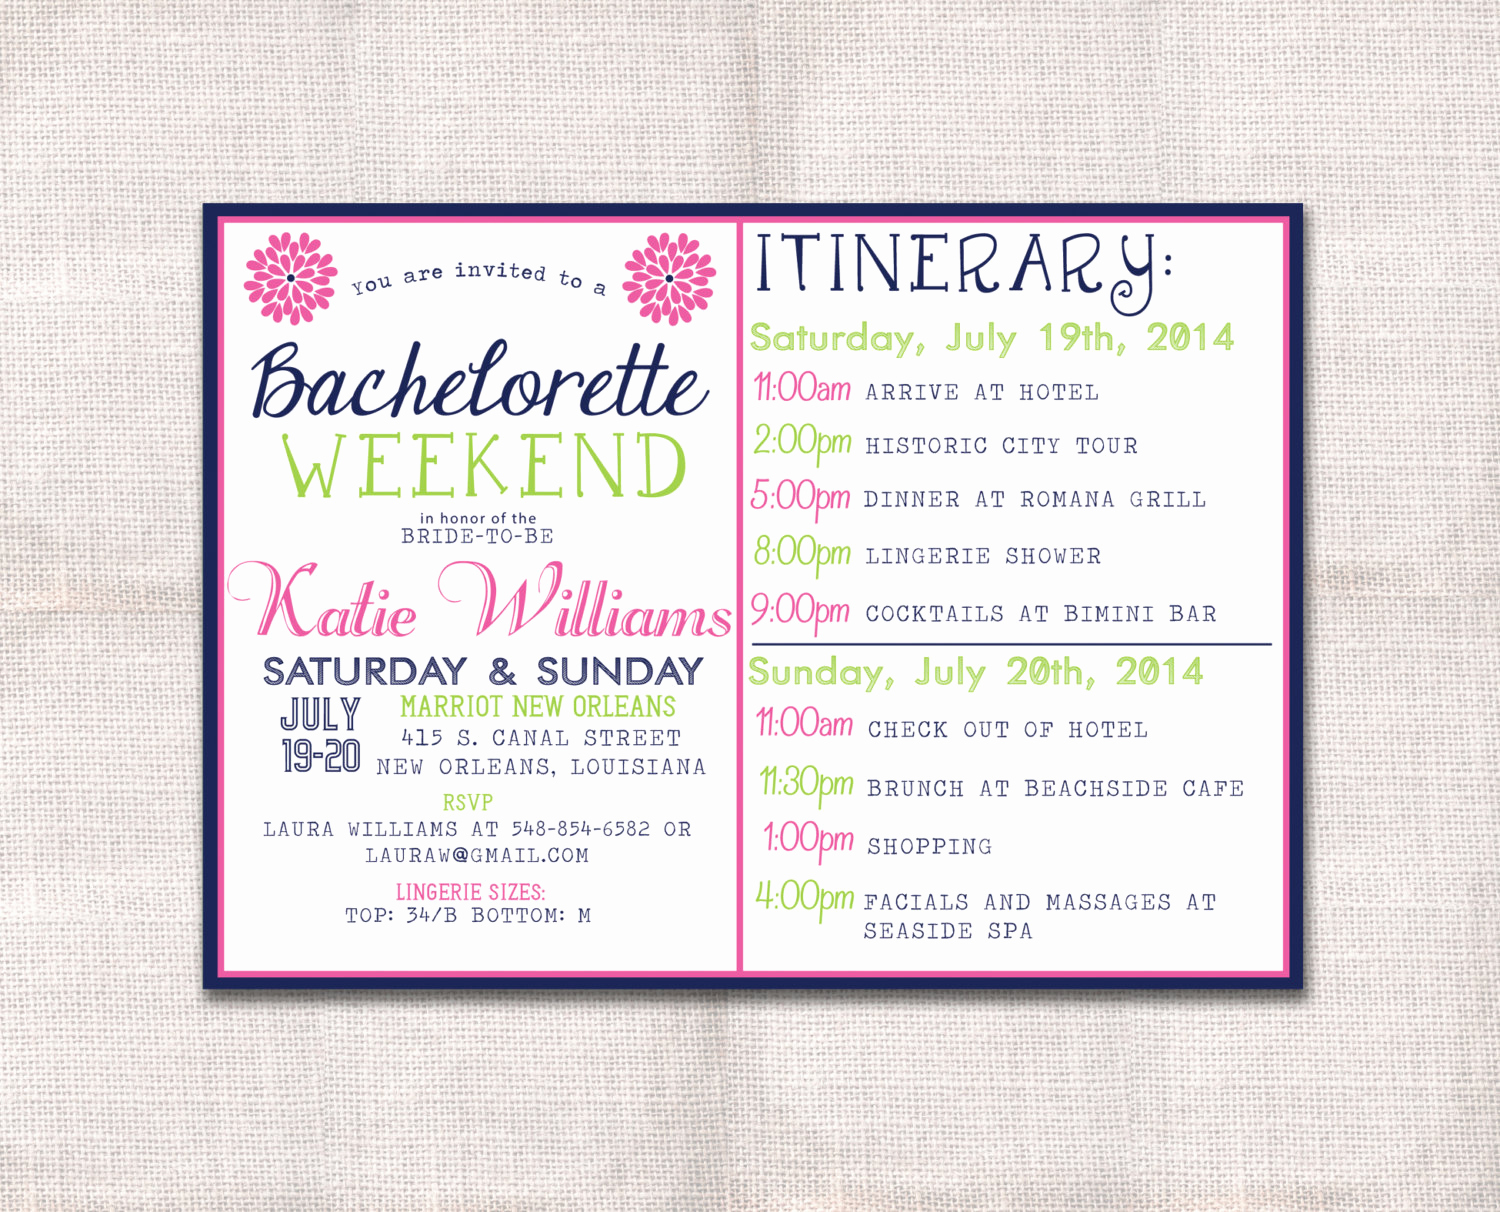 Bachelorette Party Itinerary Template Fresh Bachelorette Party Weekend Invitation and by Darlinbrandopress